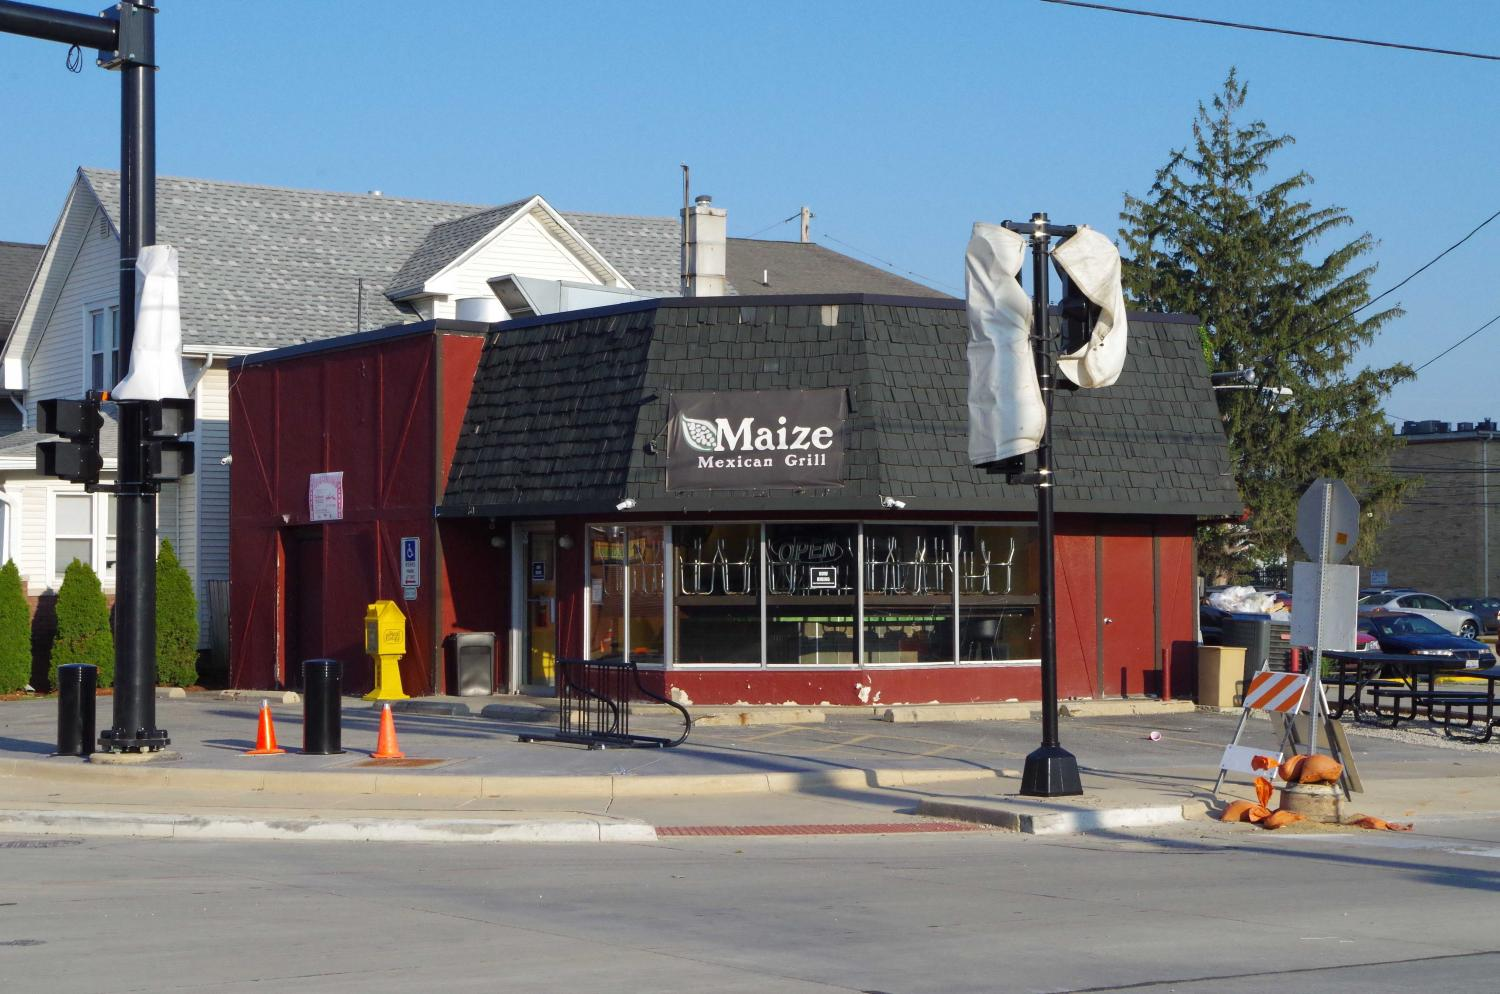 Over the summer, the Maize on First and Green Street closed due to lack of access from   delayed construction.